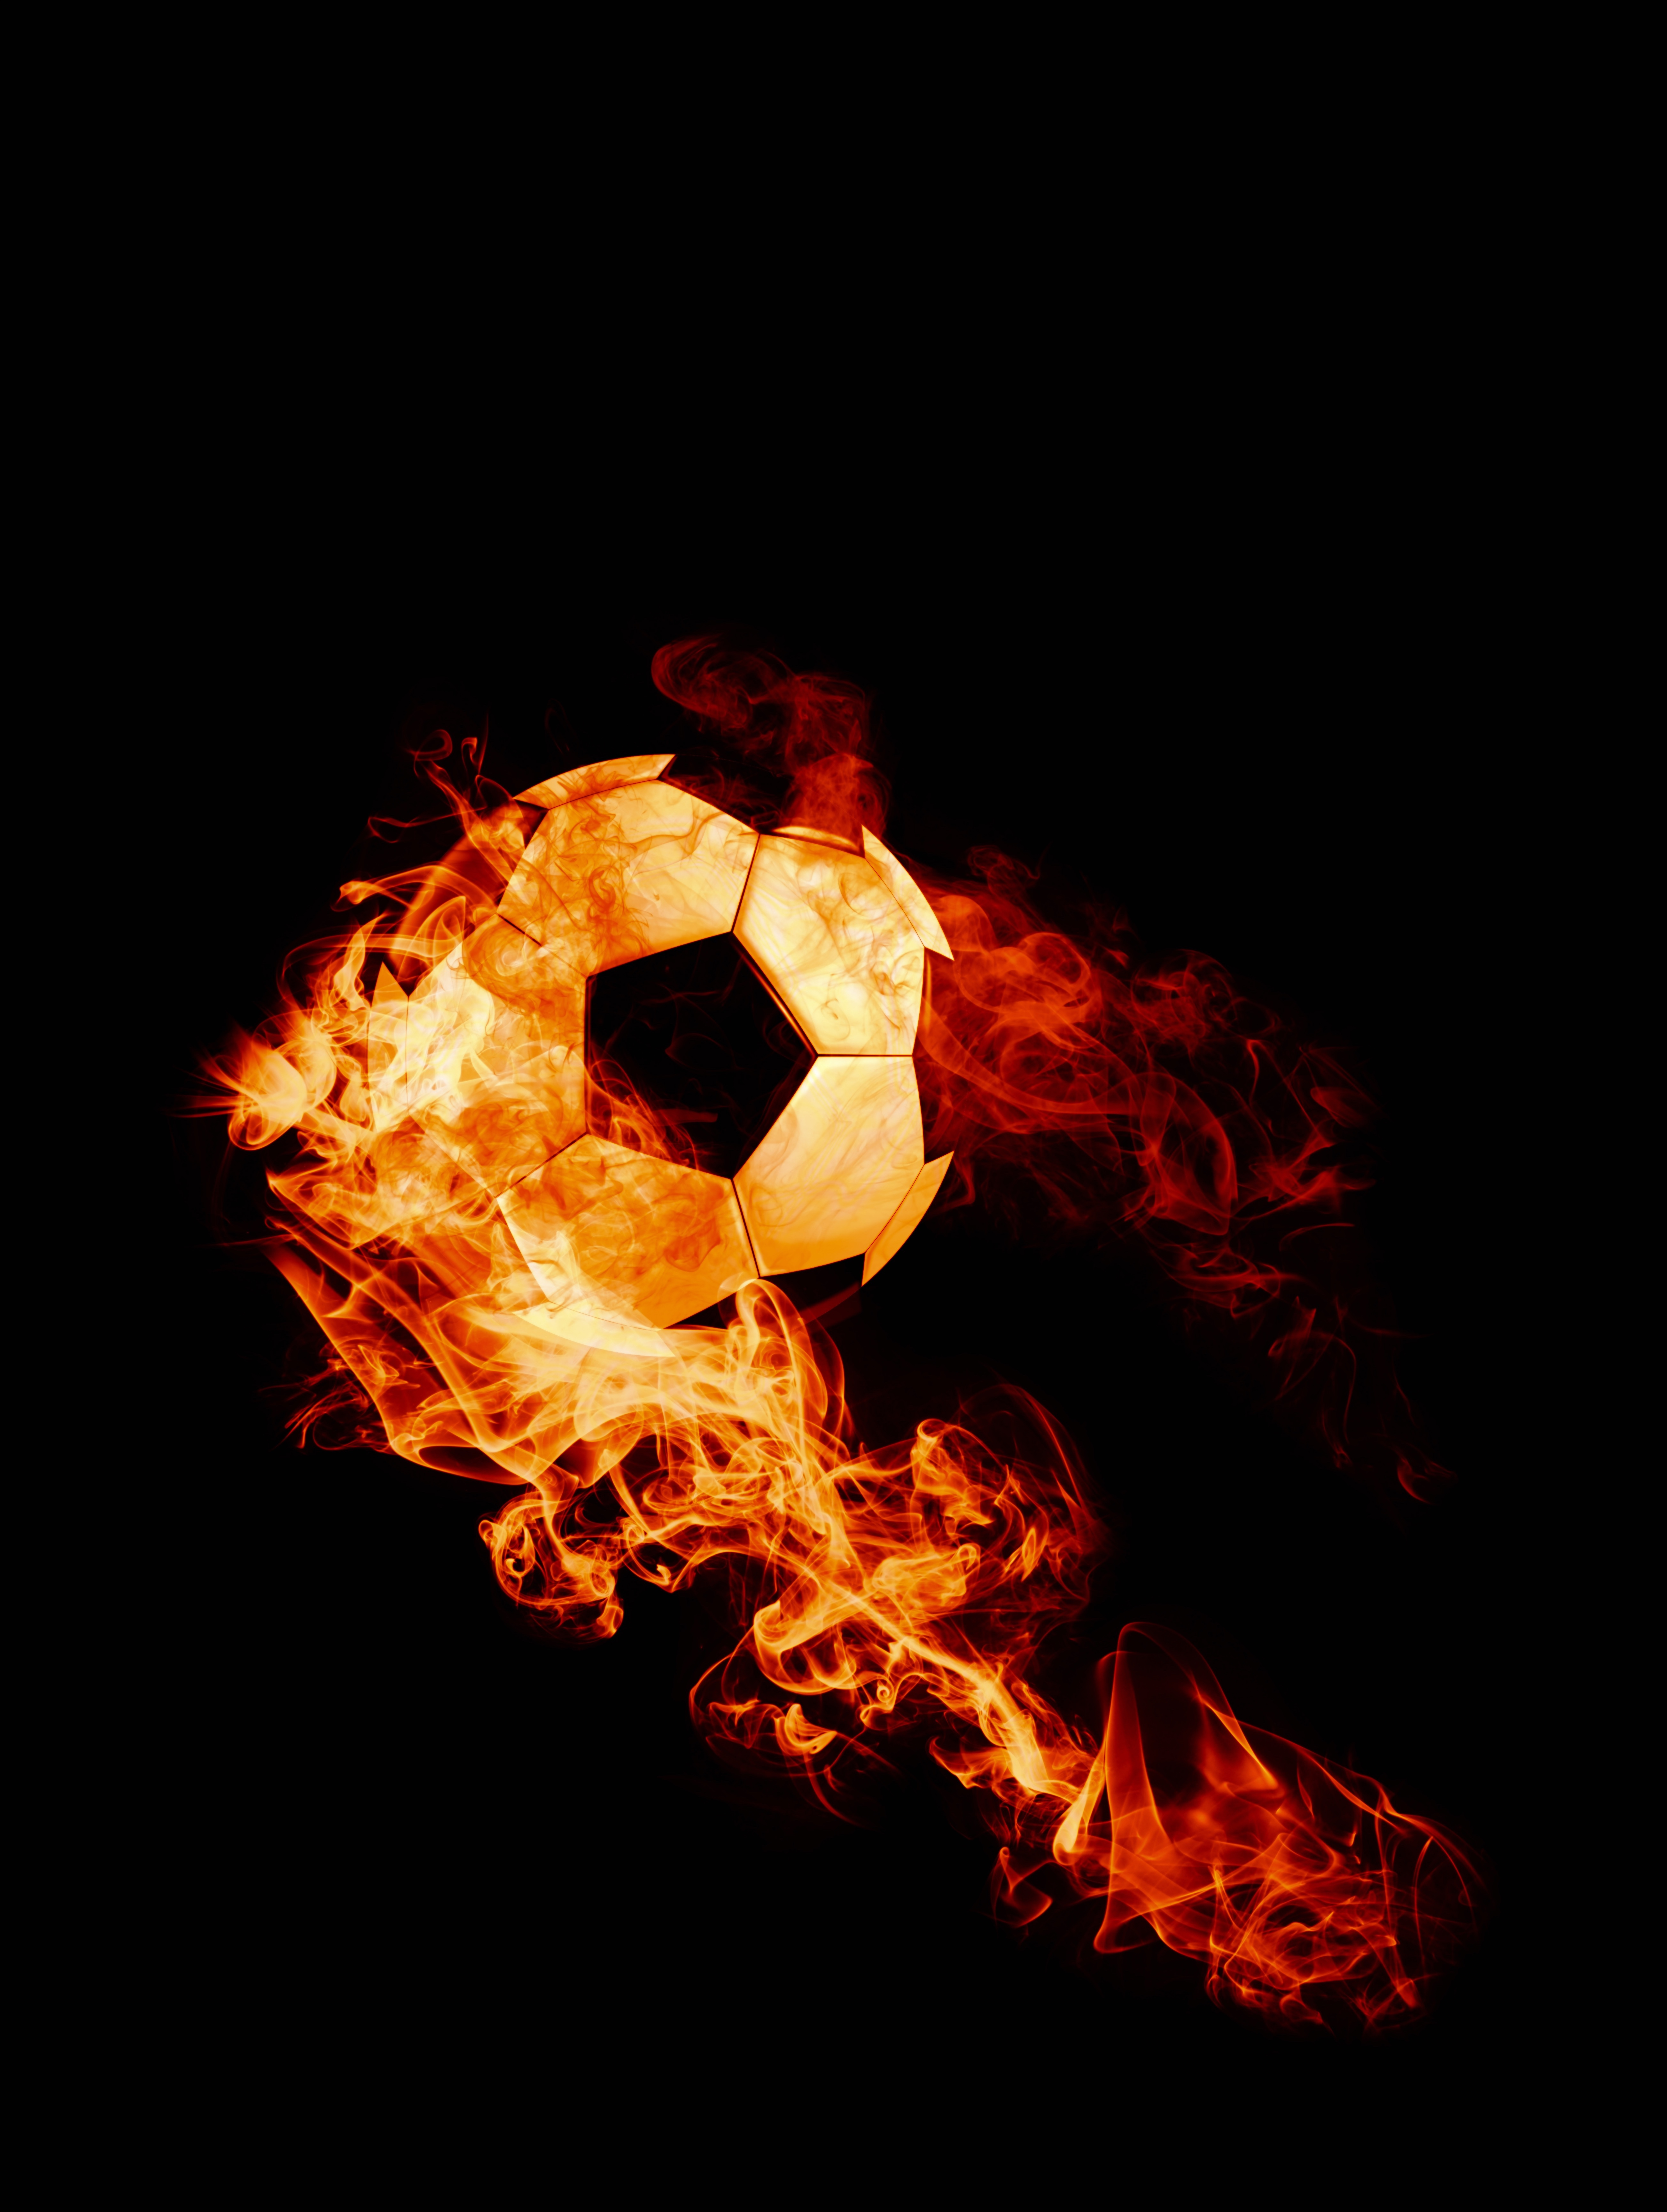 149311 download wallpaper Sports, Ball, Fire, Football, Dark Background, Flame screensavers and pictures for free